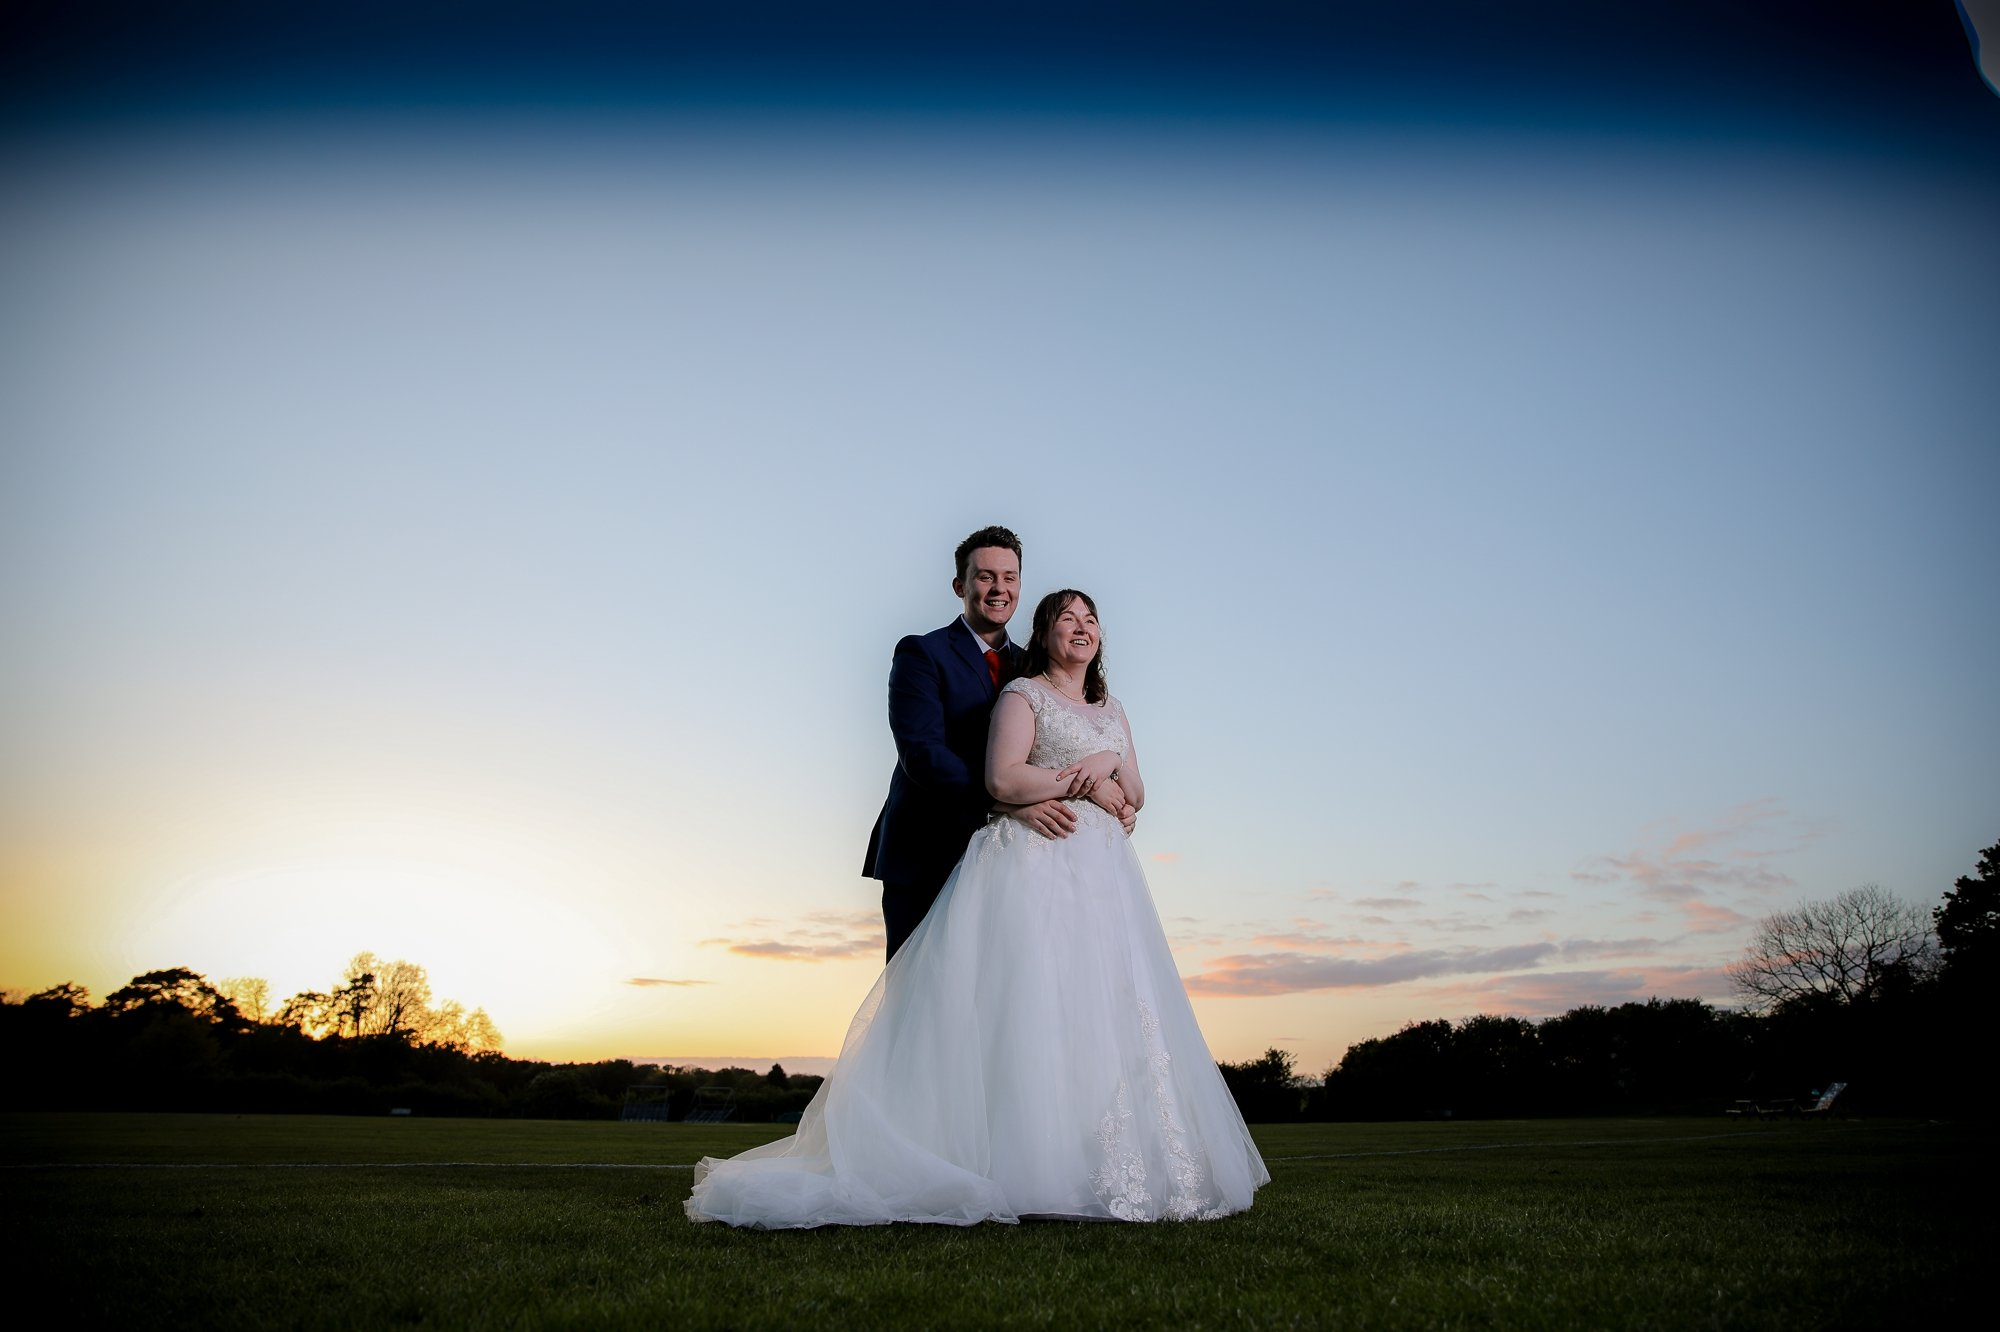 Emily + Tim's Spring Wedding | Shenley Cricket Centre.